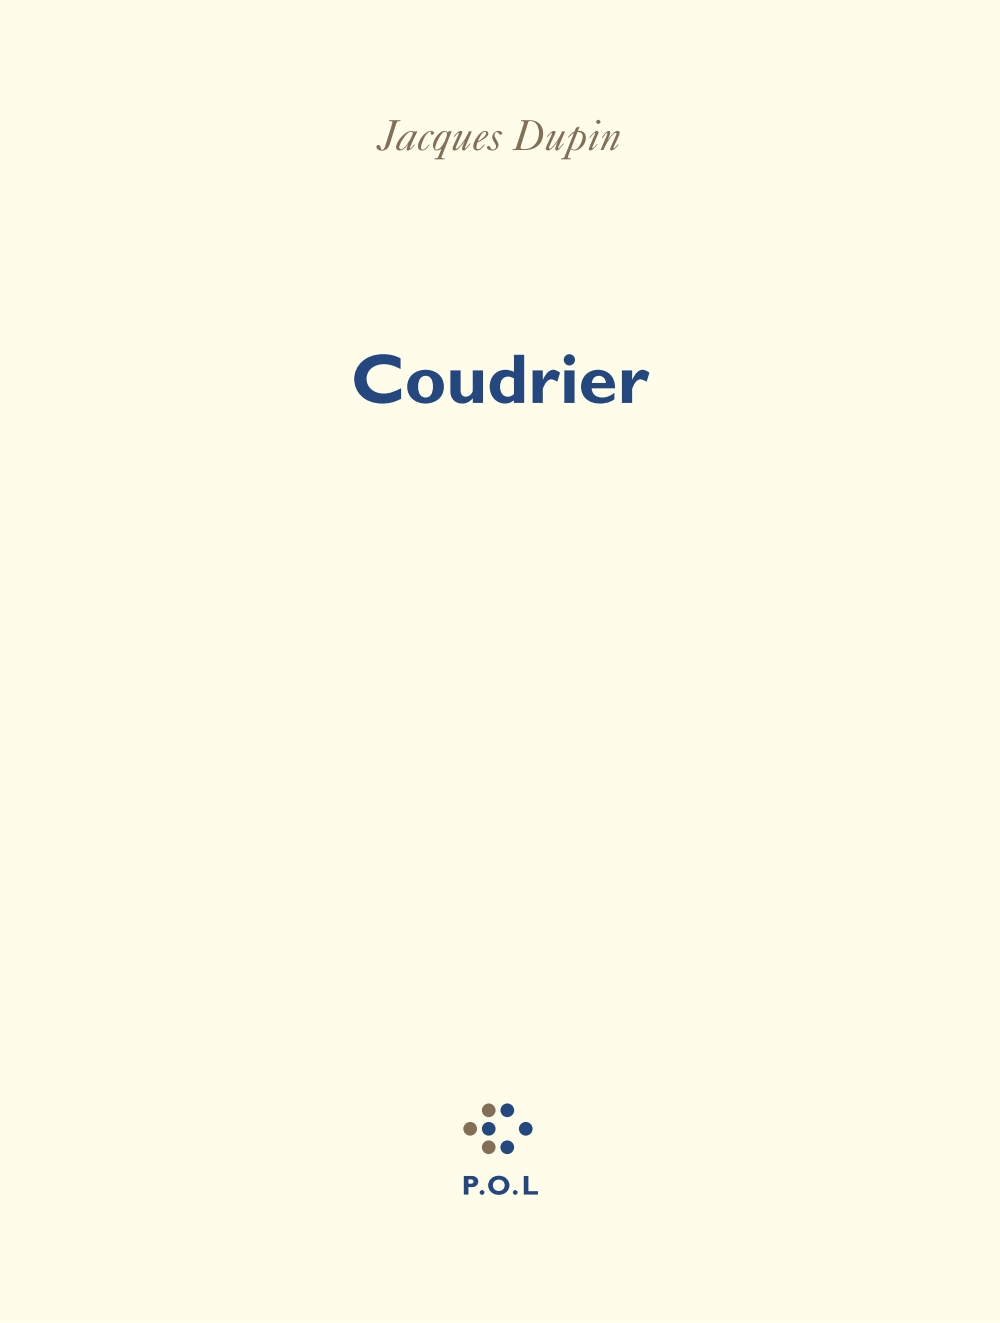 Coudrier